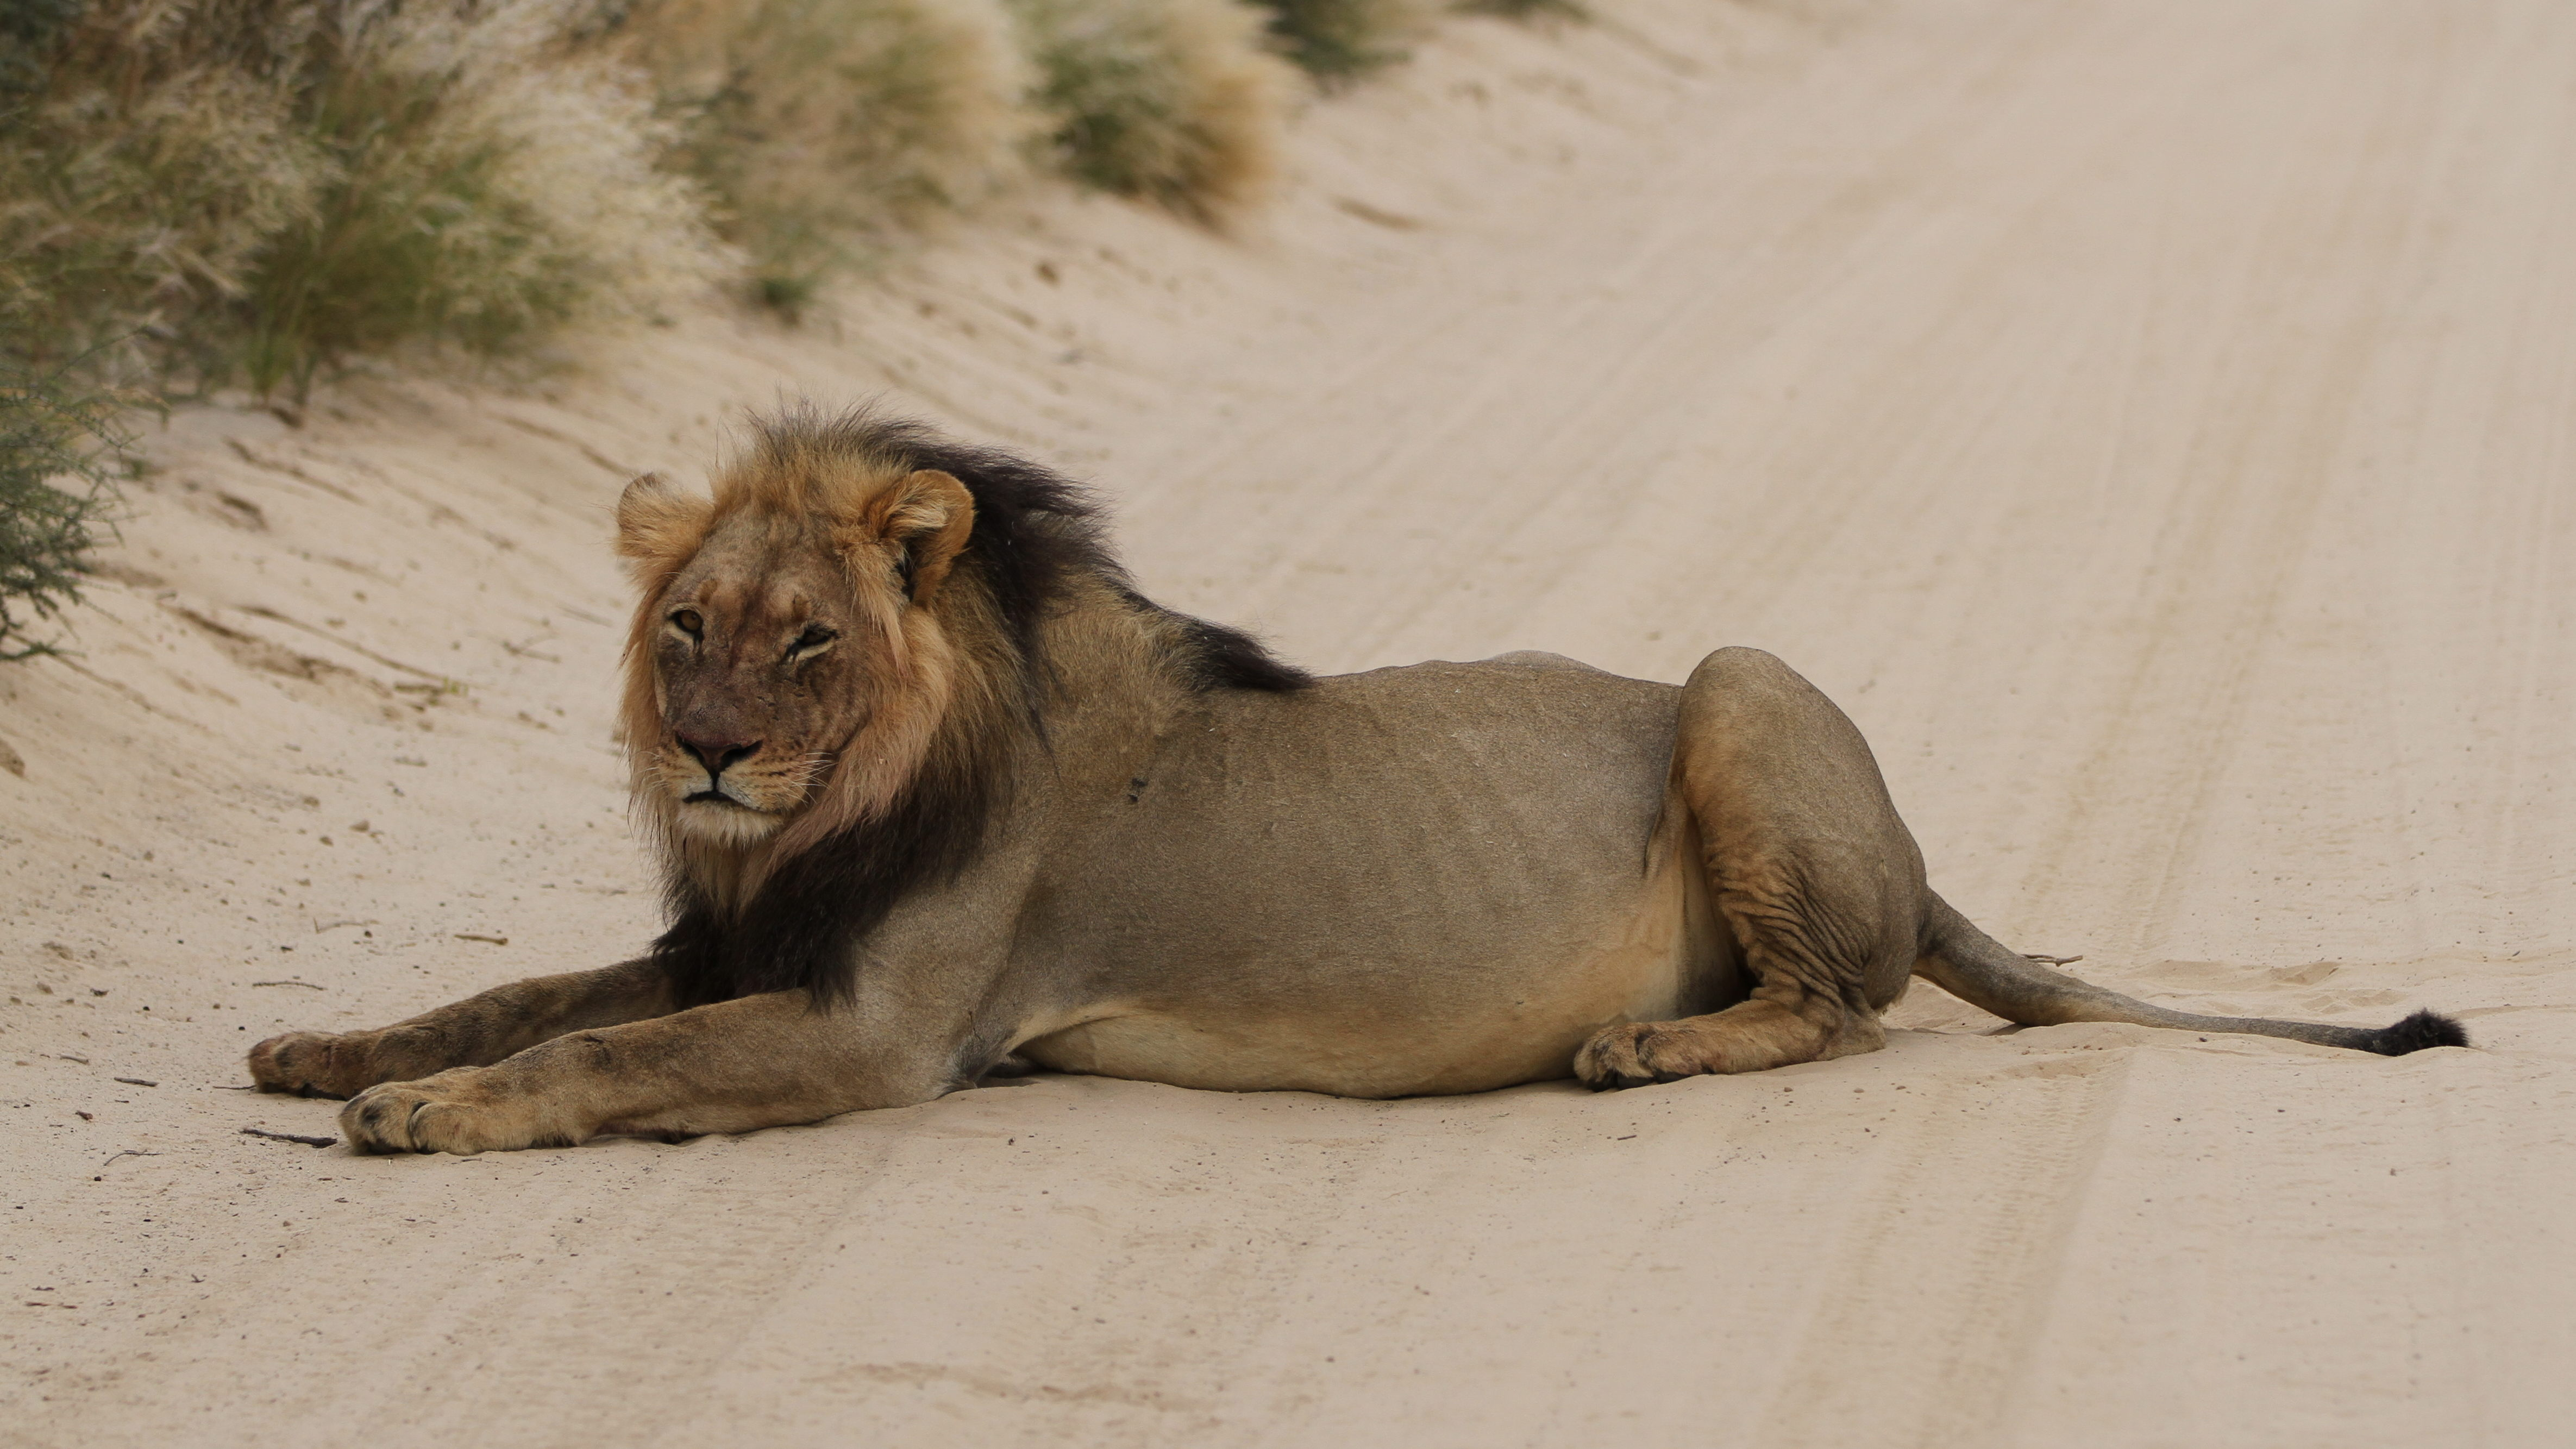 Black maned lions are one of the main attractions at Kgalagadi